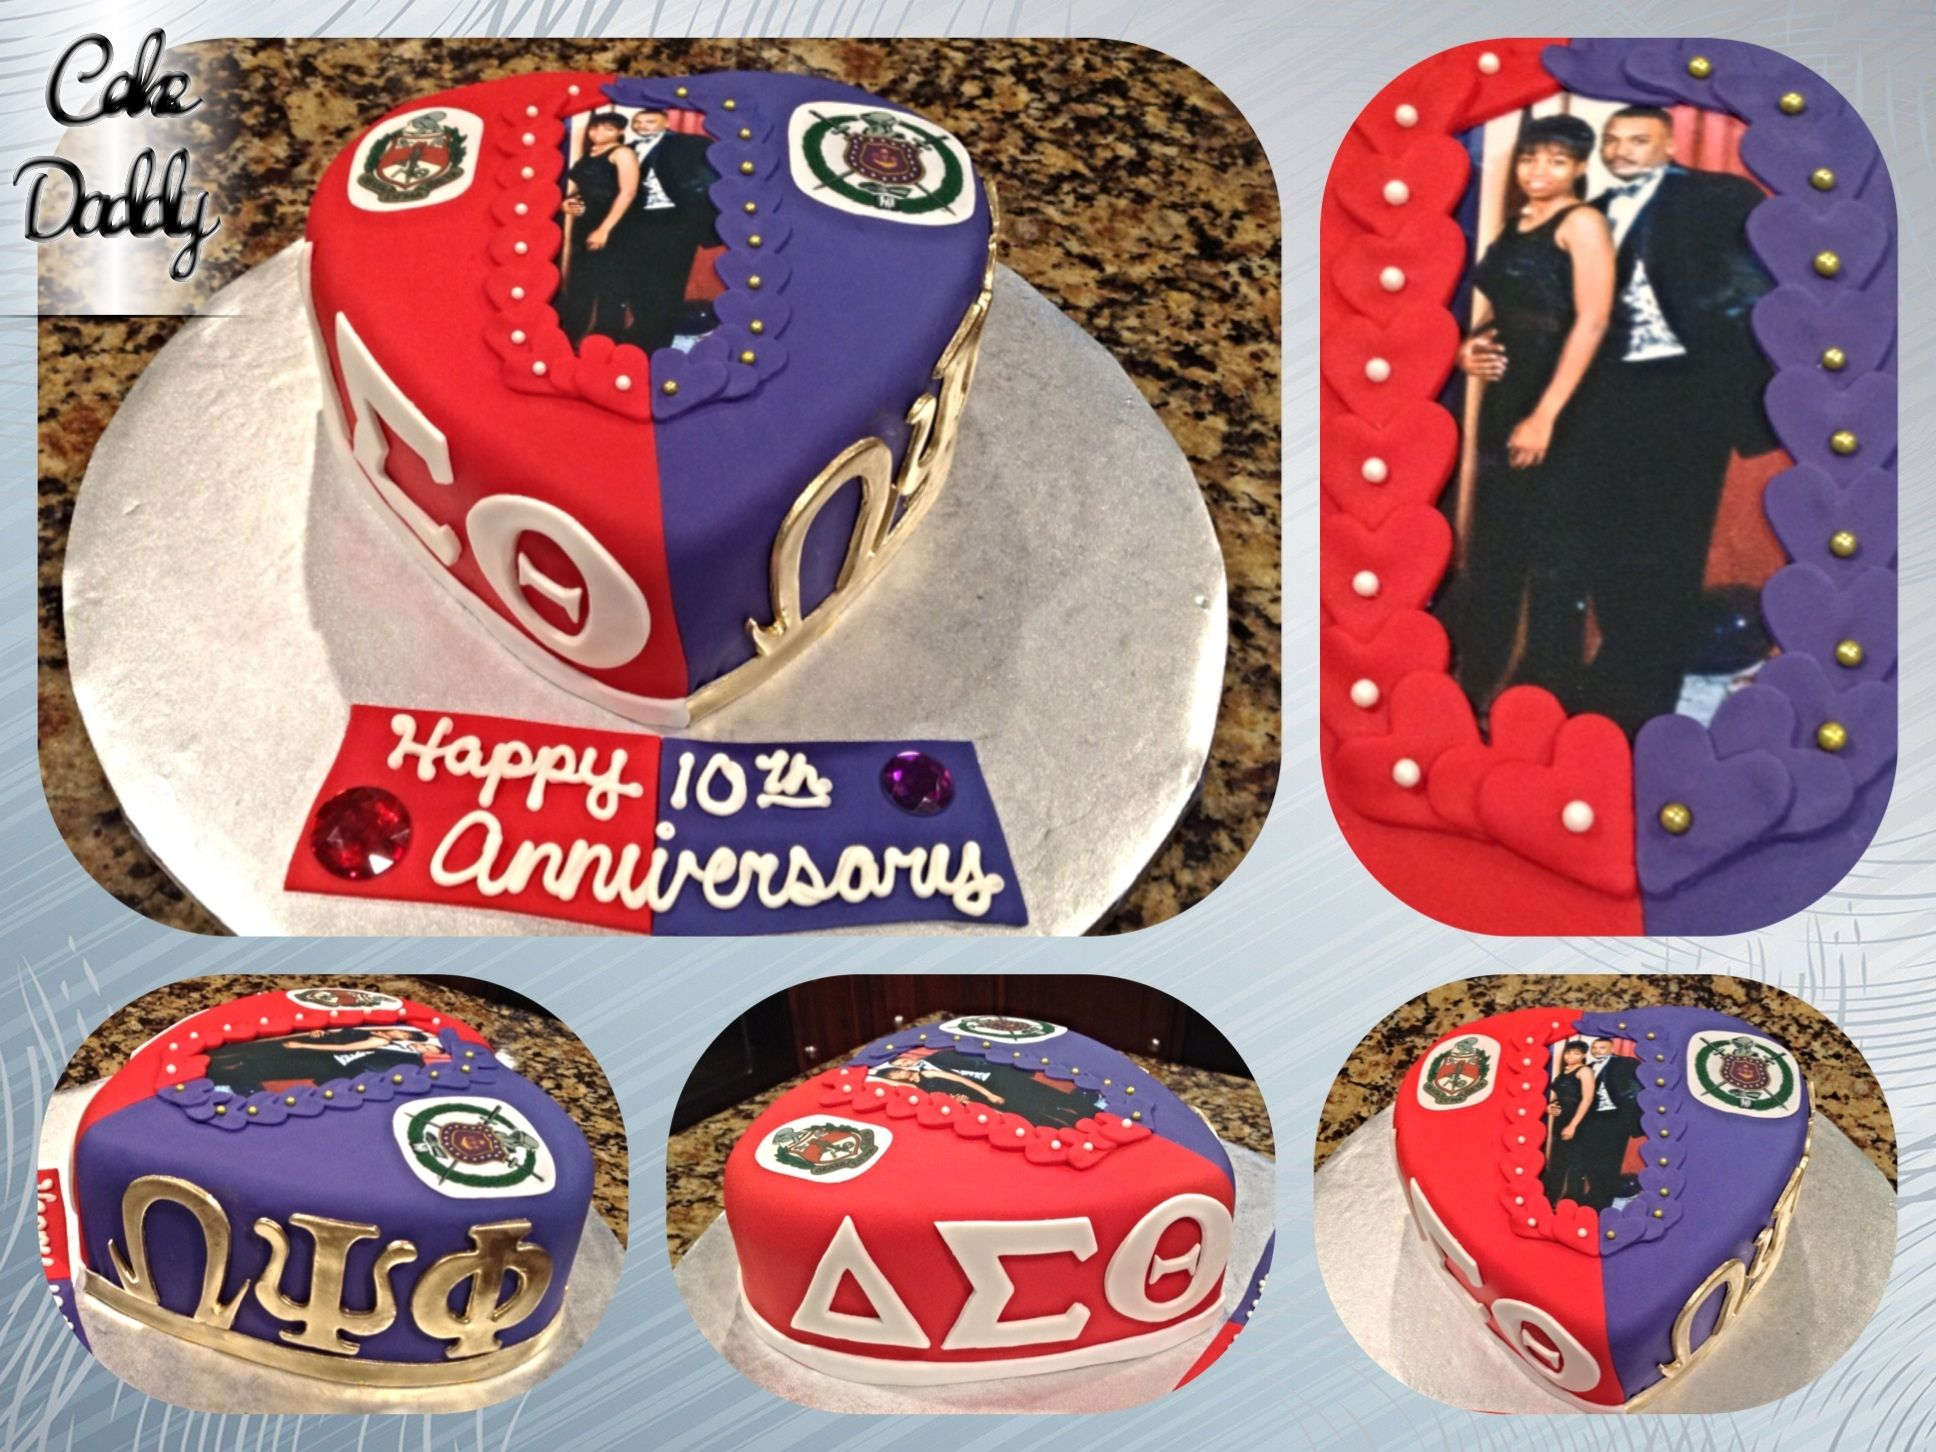 Delta que dog anniversary cake custom cakes by cake daddy delta que dog anniversary cake buycottarizona Image collections